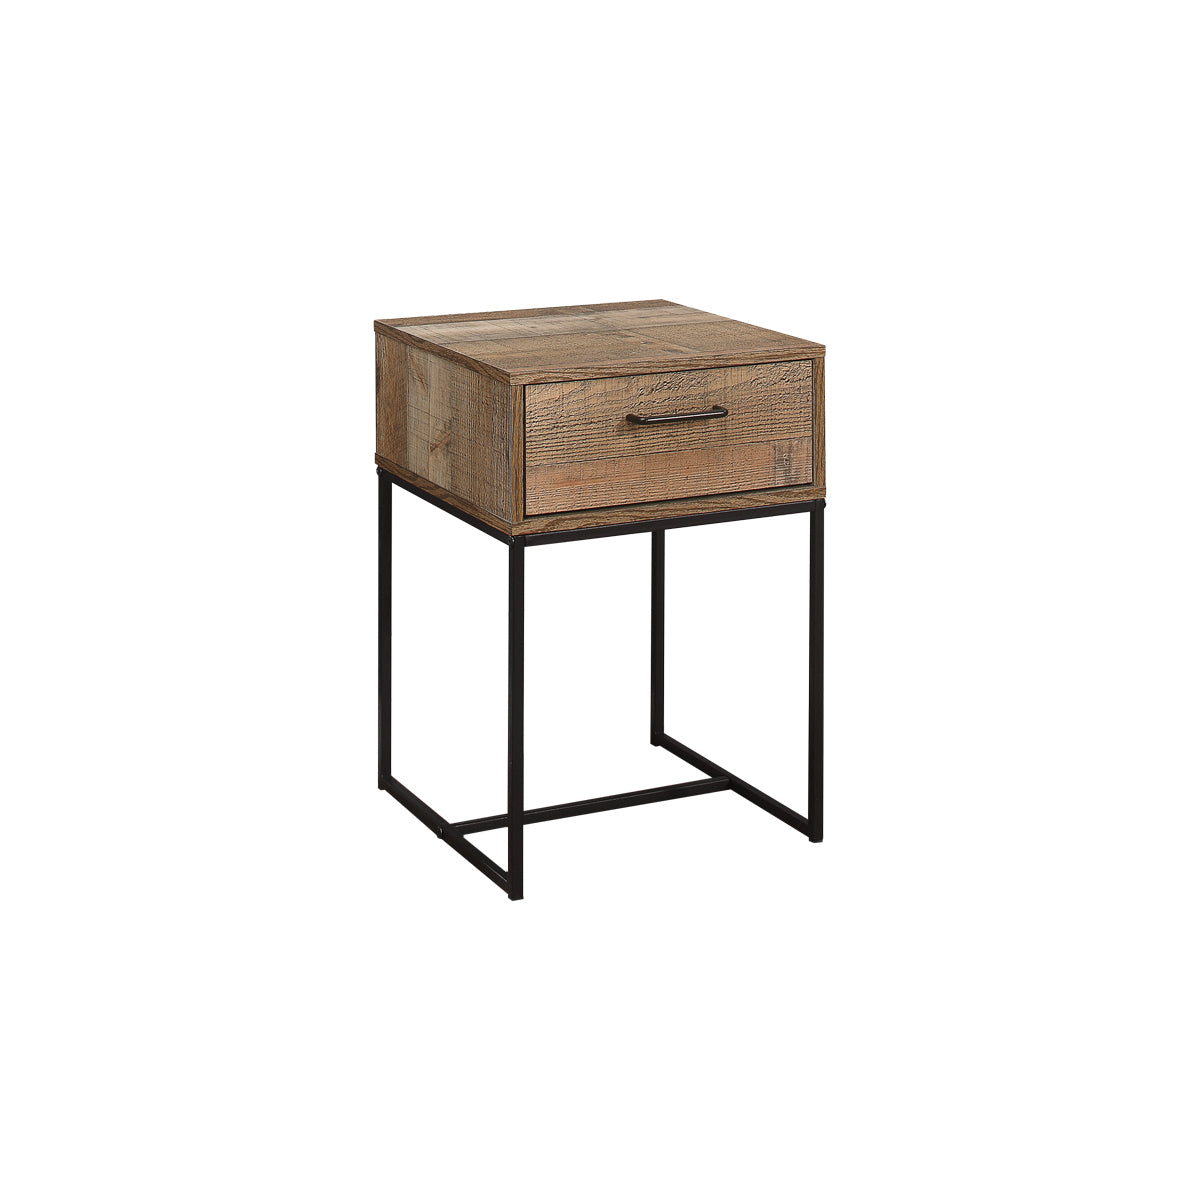 Metro 1 Drawer Narrow Bedside Table